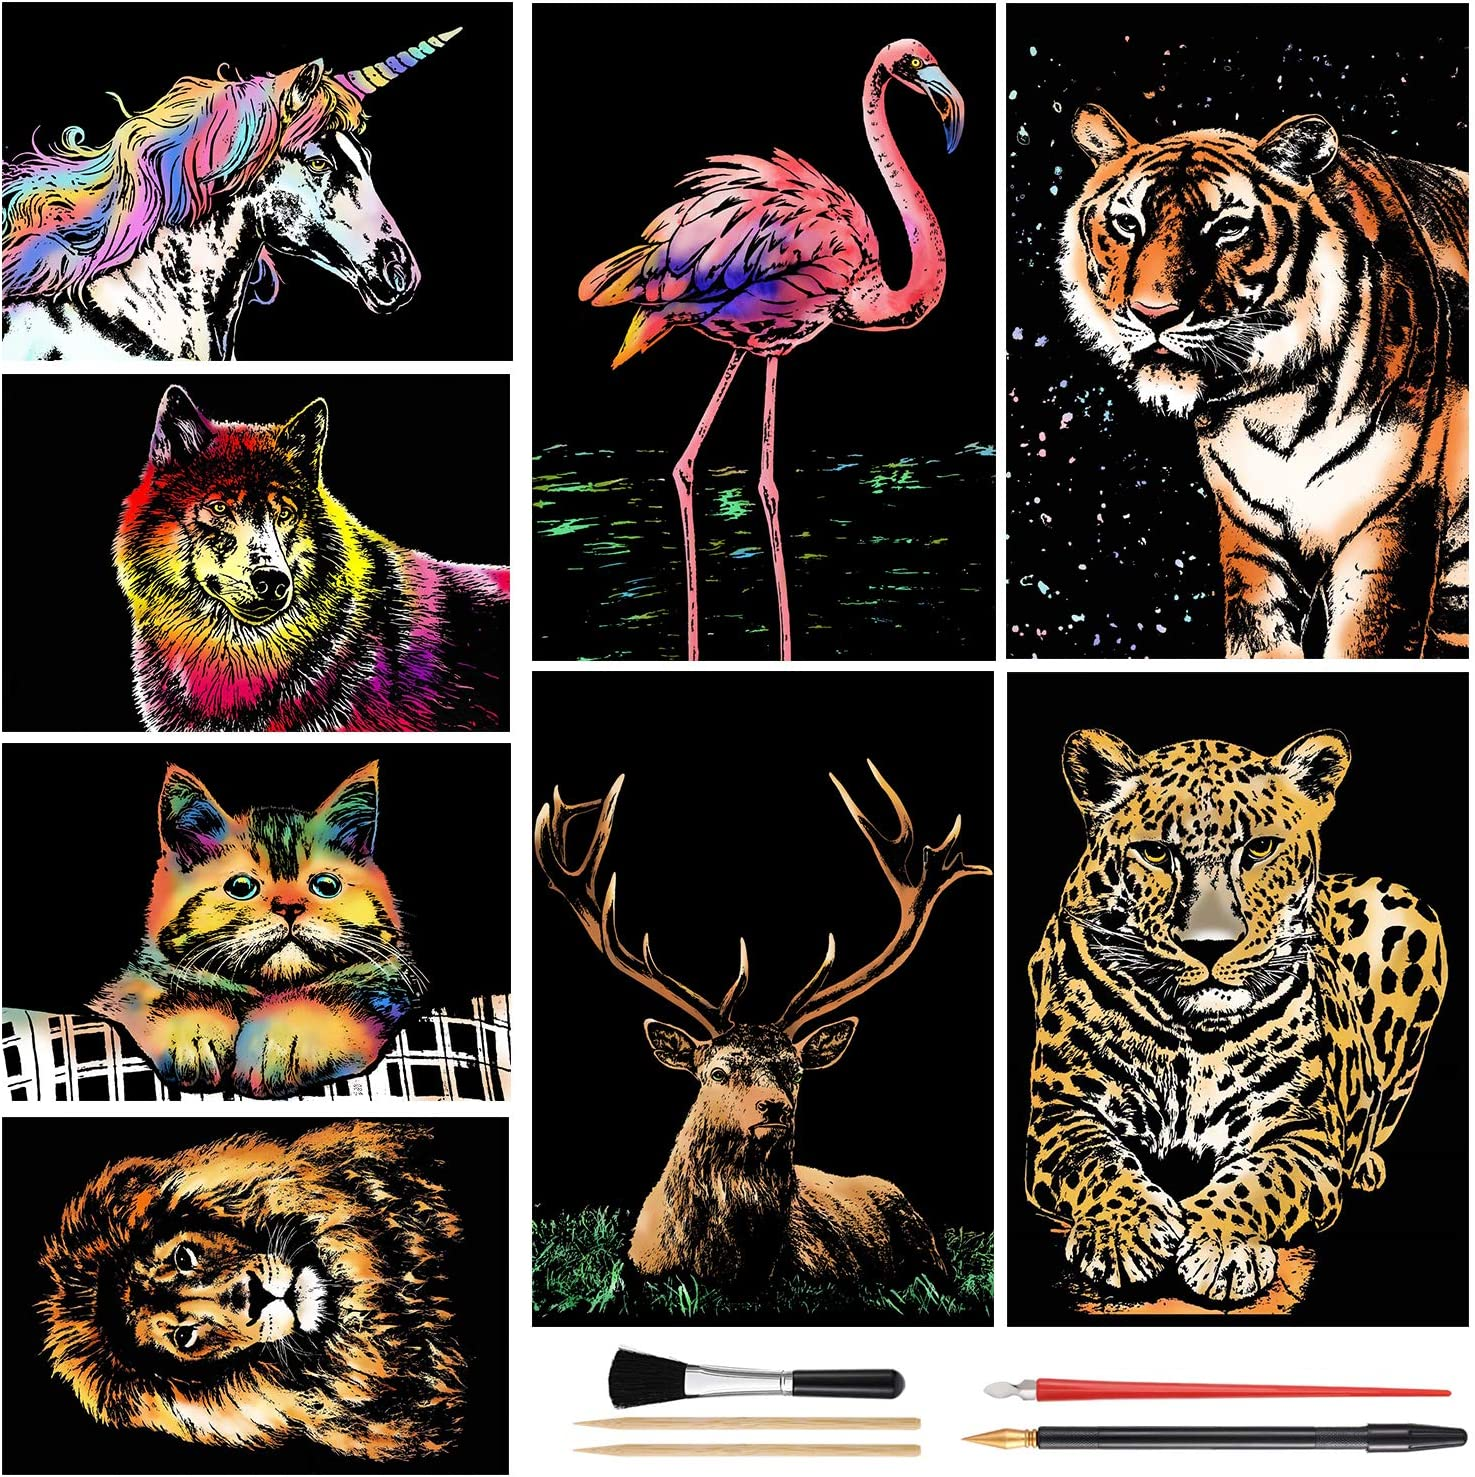 Engraving Art for Kids /& Adults Scratch Painting Easter /& Christmas Birthday Creative Gift Set: 8 Sheets Scratch Art Rainbow Painting Paper Animal DIY Crafts Womens Hobbies A4 Animal Series